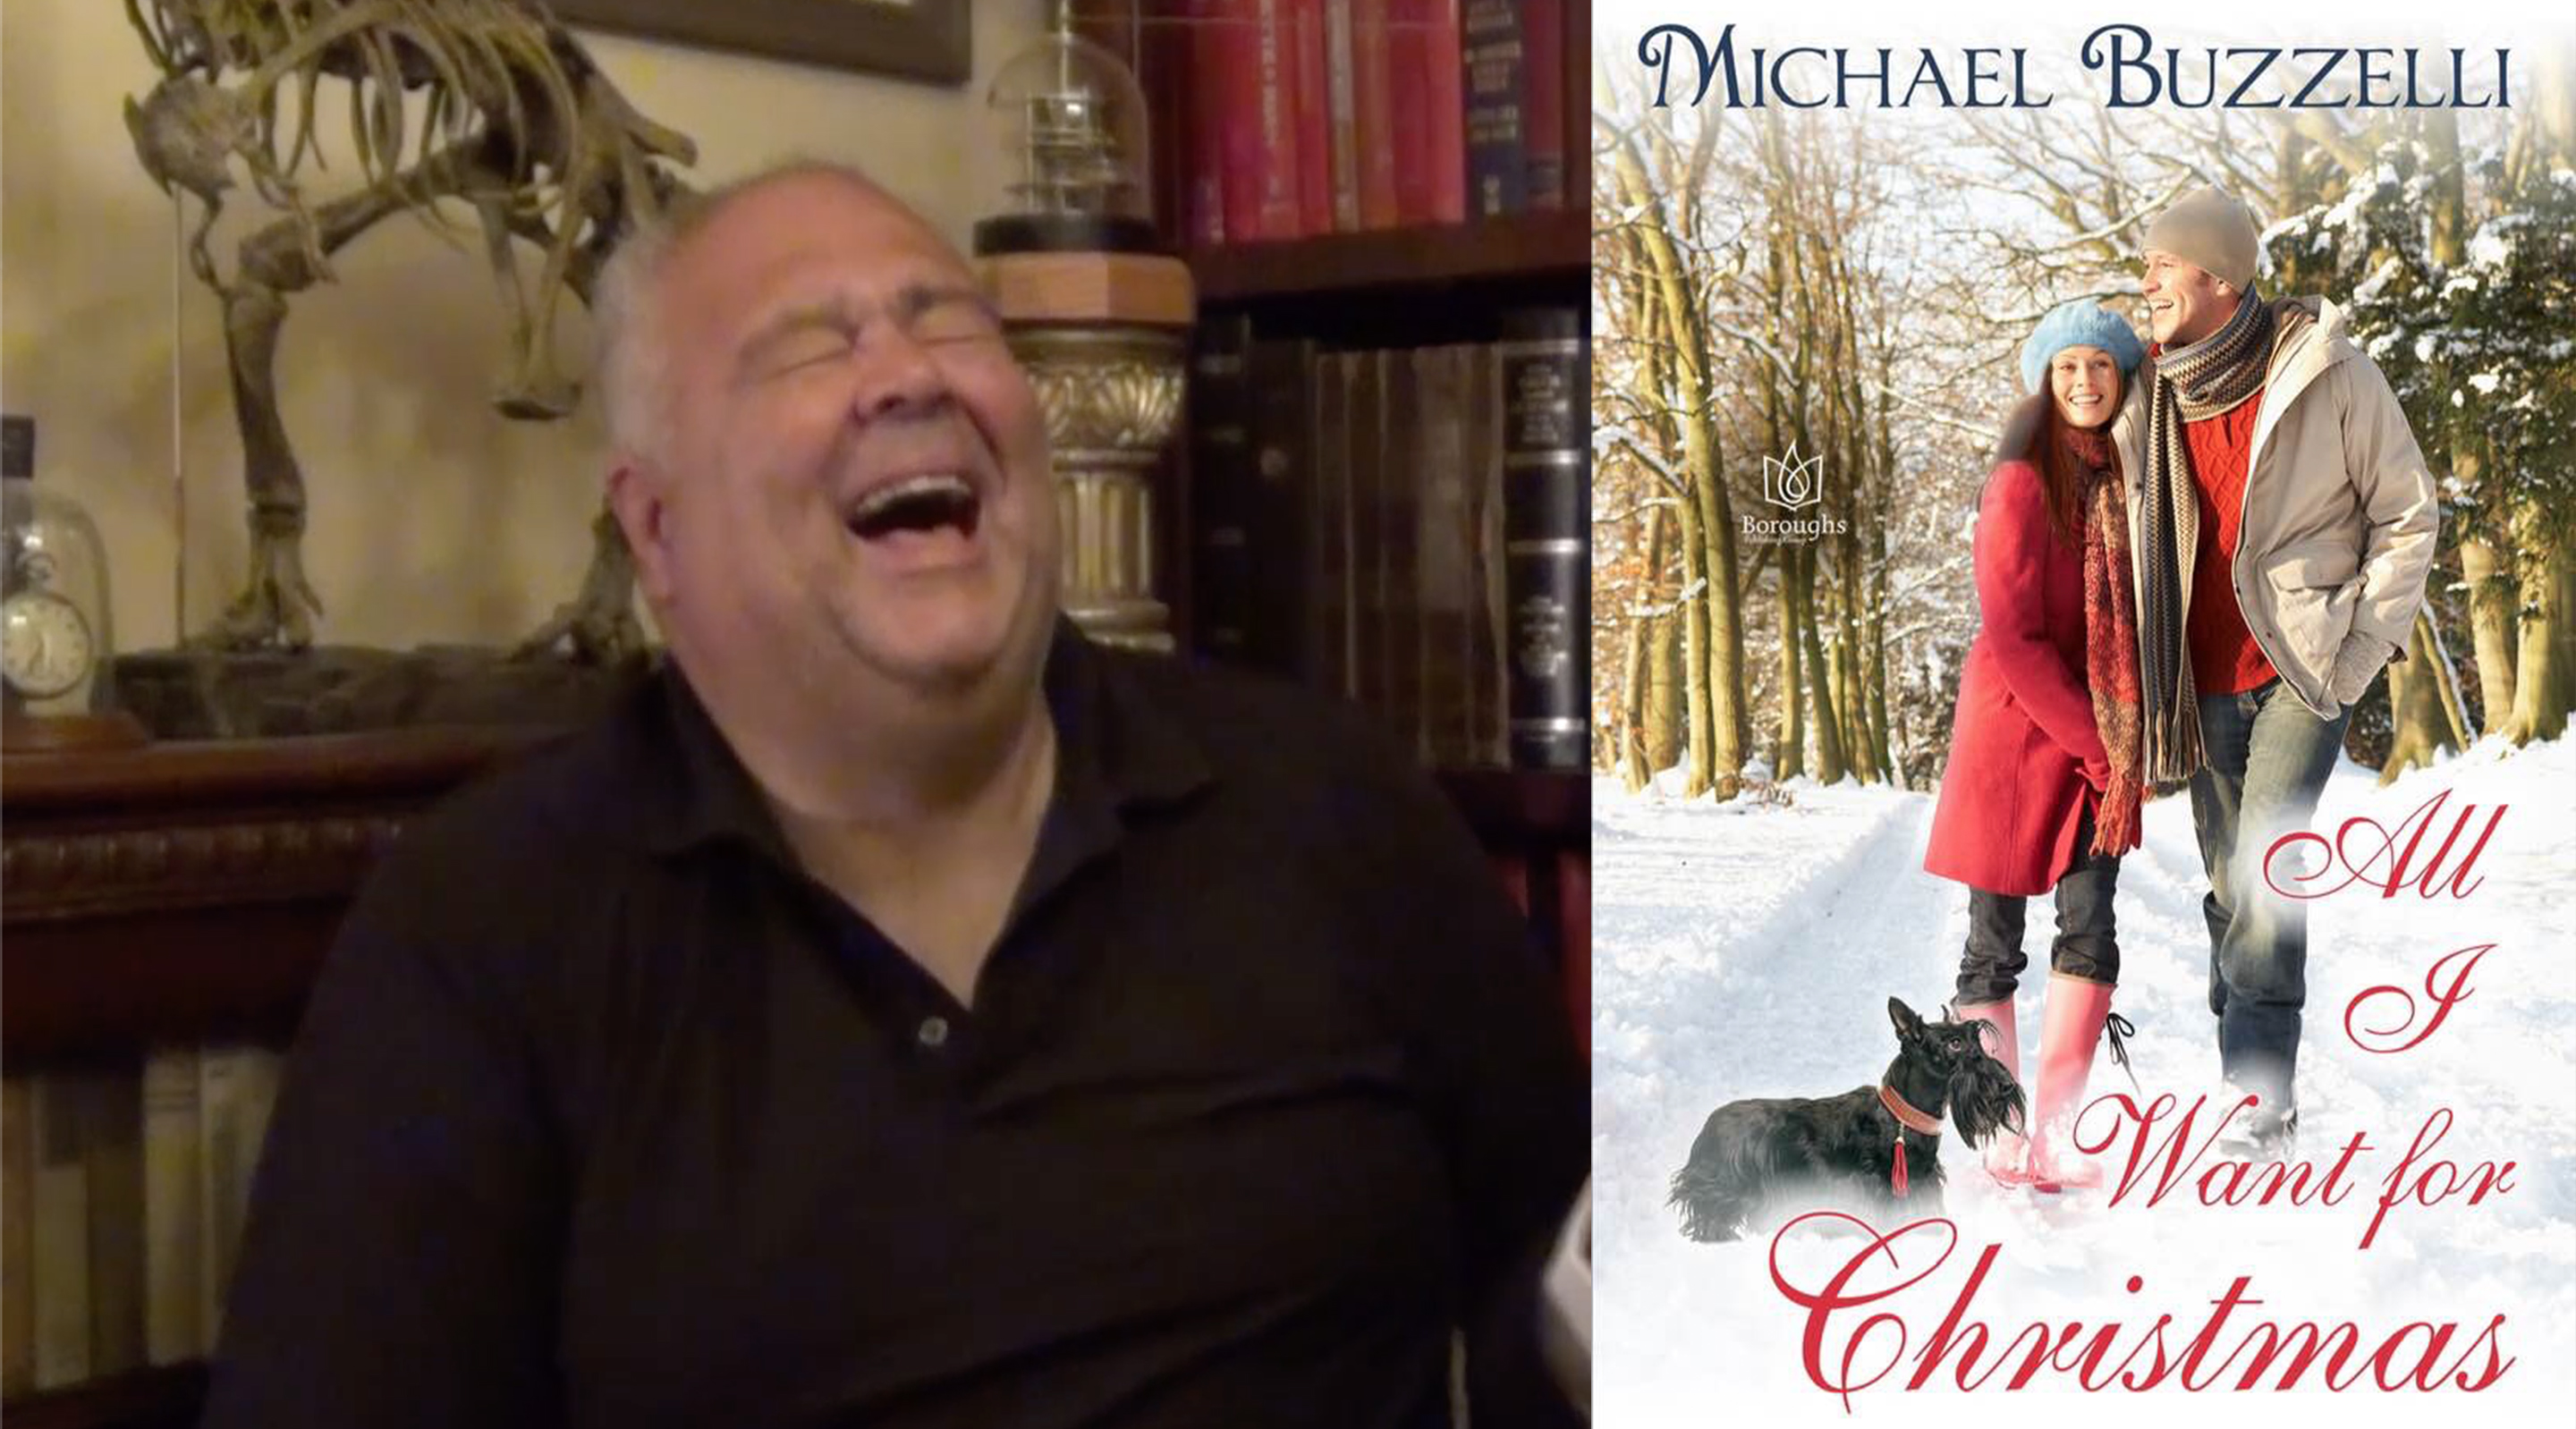 MICHAEL BUZZELLI – Author, ALL I WANT FOR CHRISTMAS